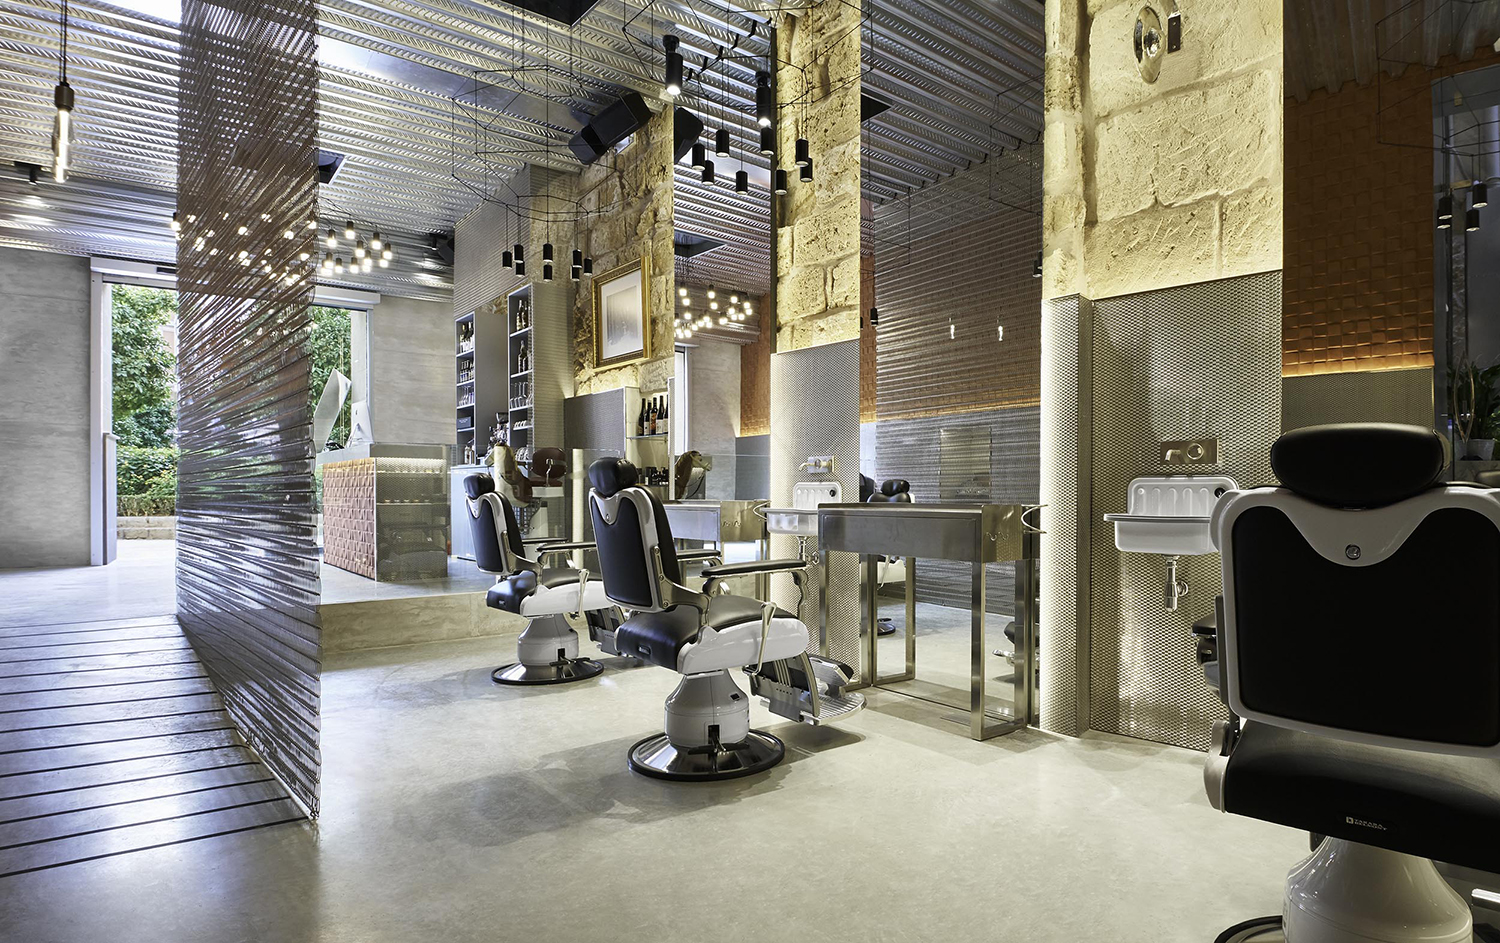 7-art-sanchez-architecture-interior-design-photography-mallorca-spain-minimal-studio-barbers-club.jpg